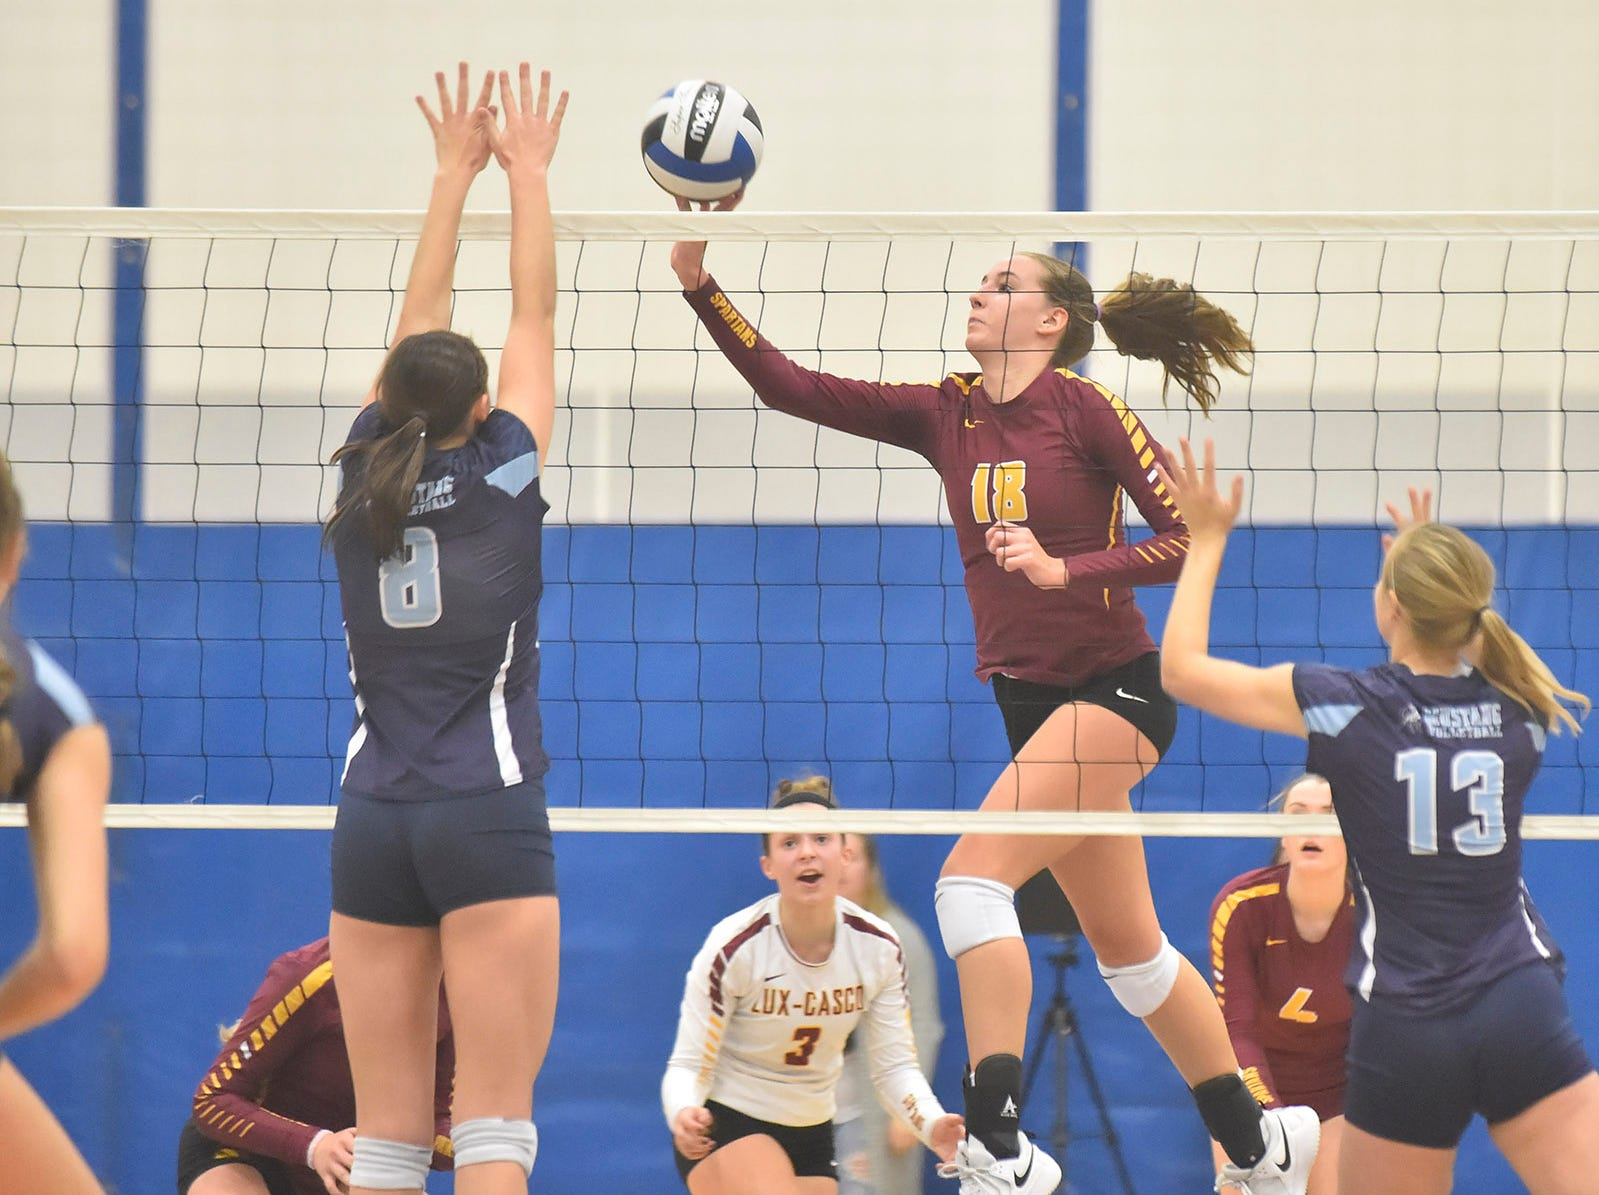 Hannah Derenne of Luxemburg-Casco at the WIAA Division 2 sectional final against Little Chute on Oct. 27, 2018, in Wrightstown. Tina M. Gohr/USA TODAY NETWORK-Wisconsin